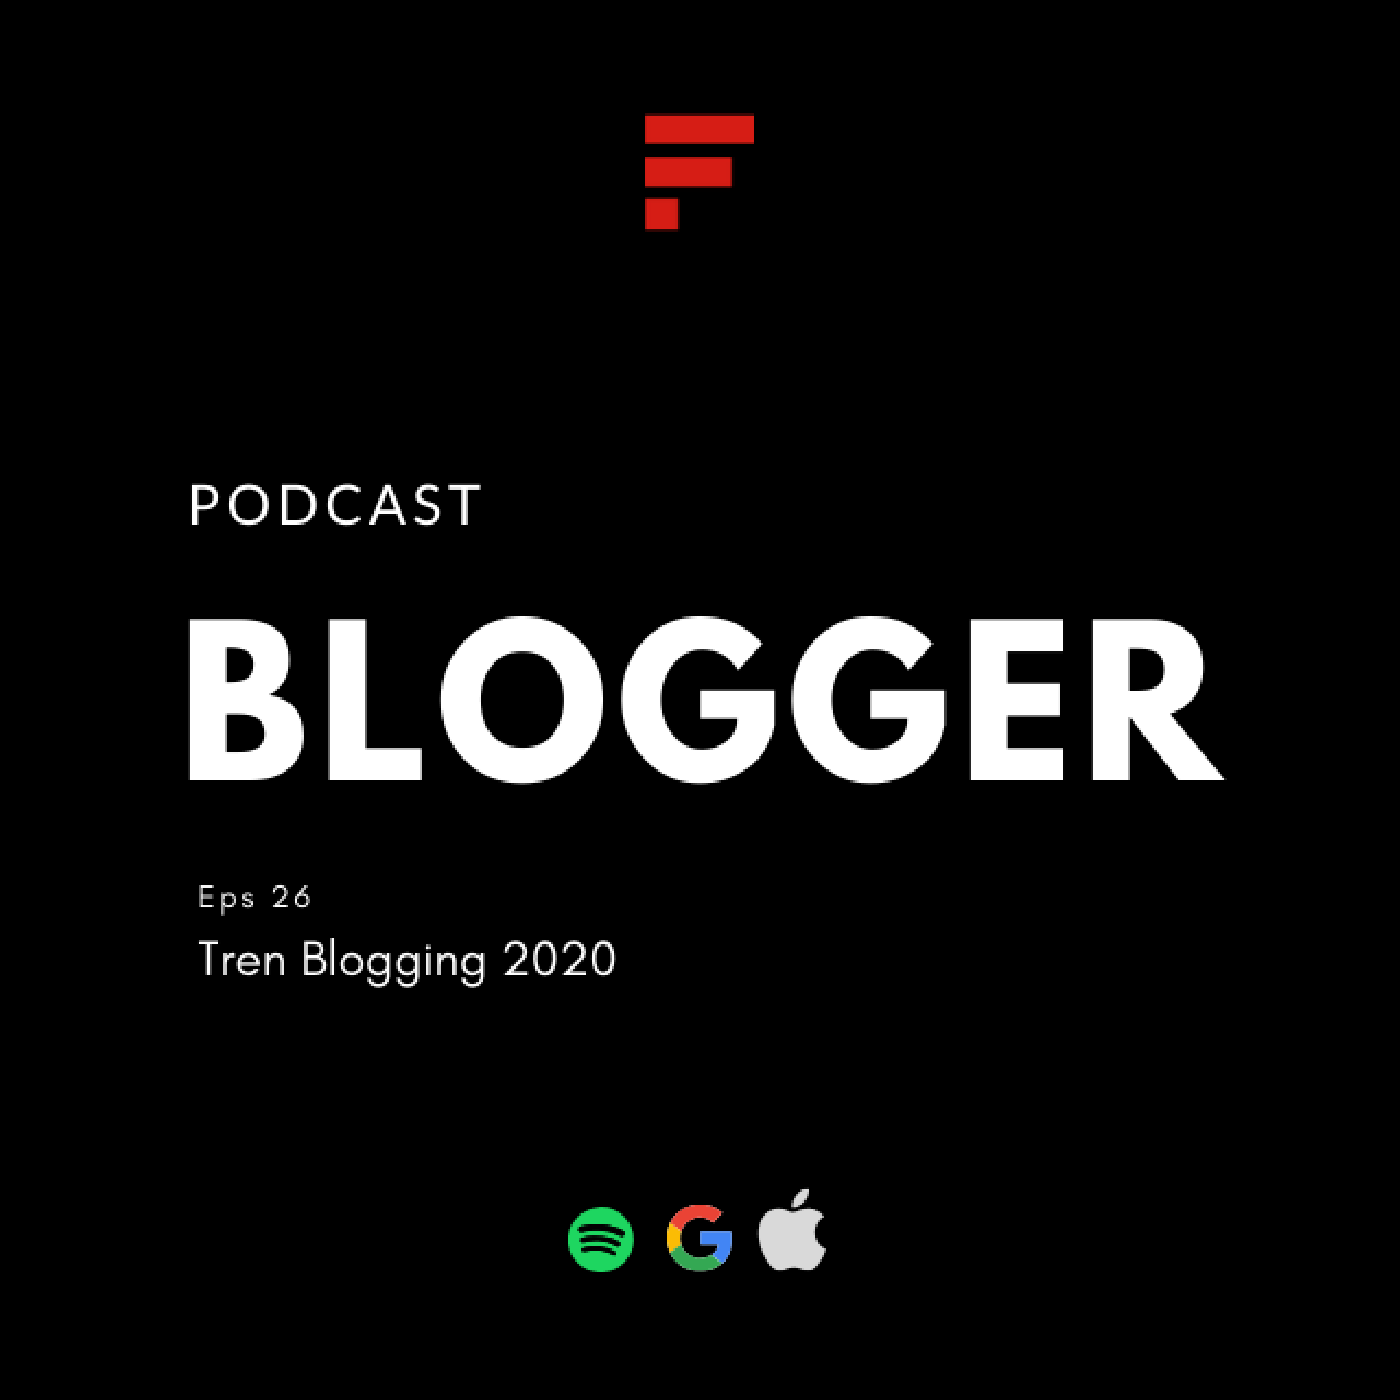 EPS26: Tren Blogging 2020